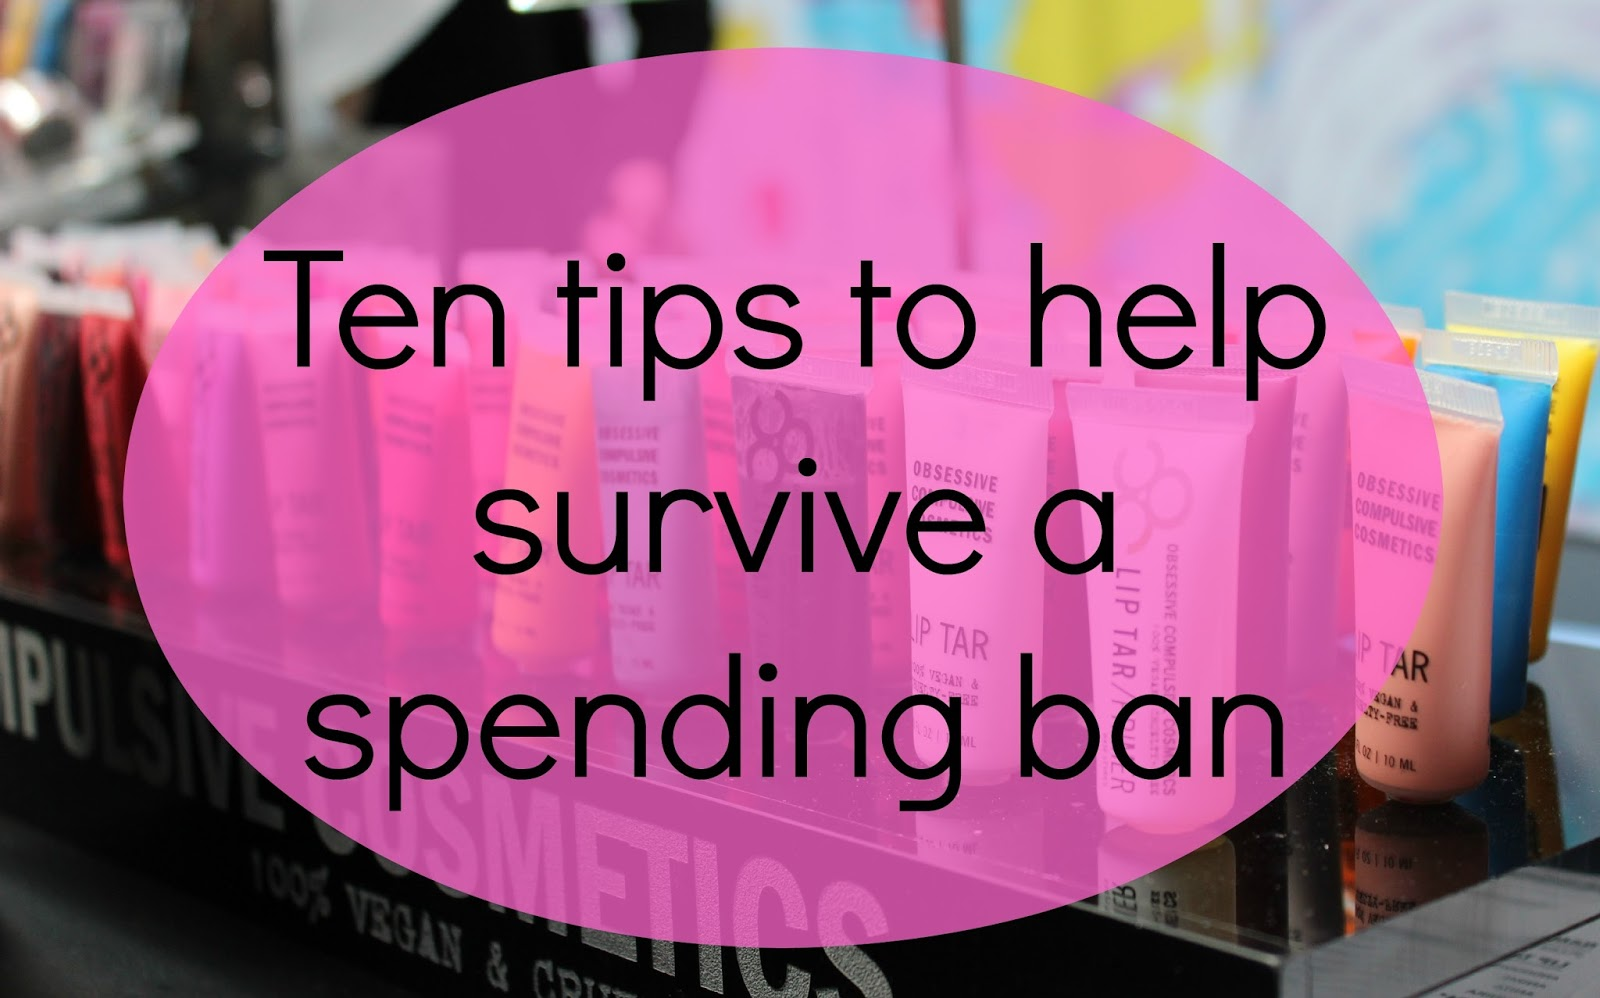 spending ban survival tips